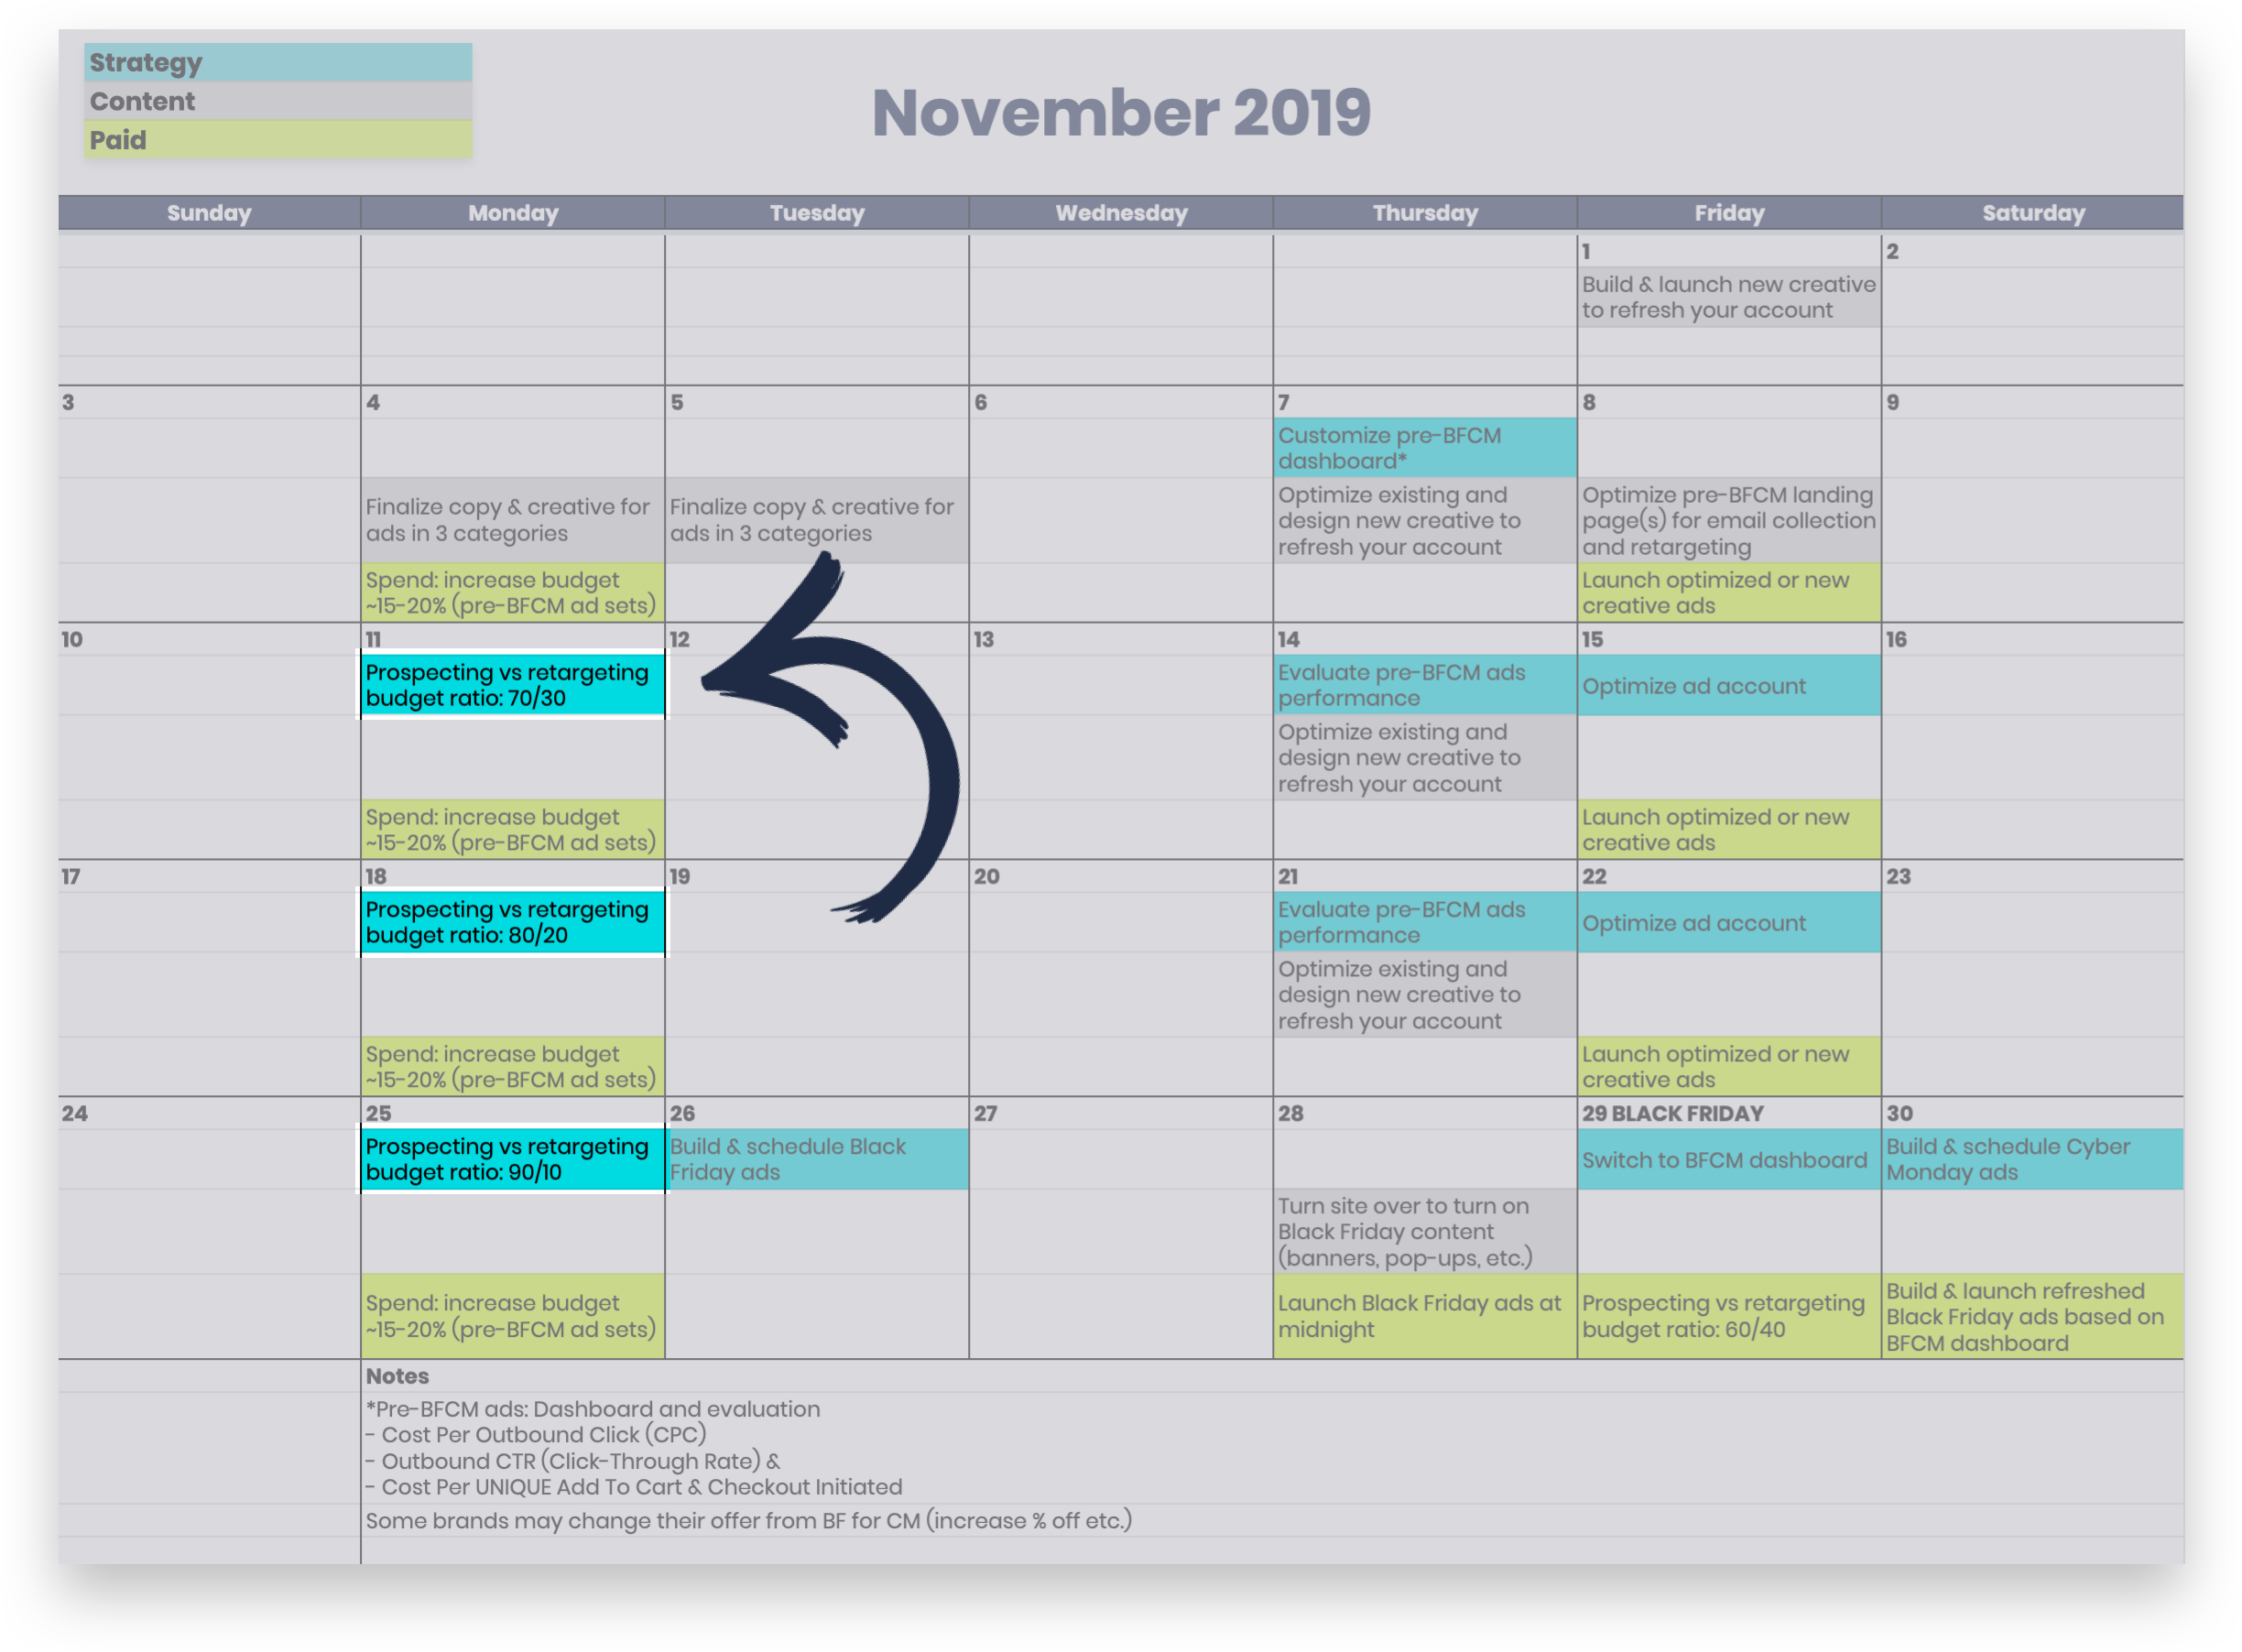 November Black Friday Campaigns Calendar Highlighted